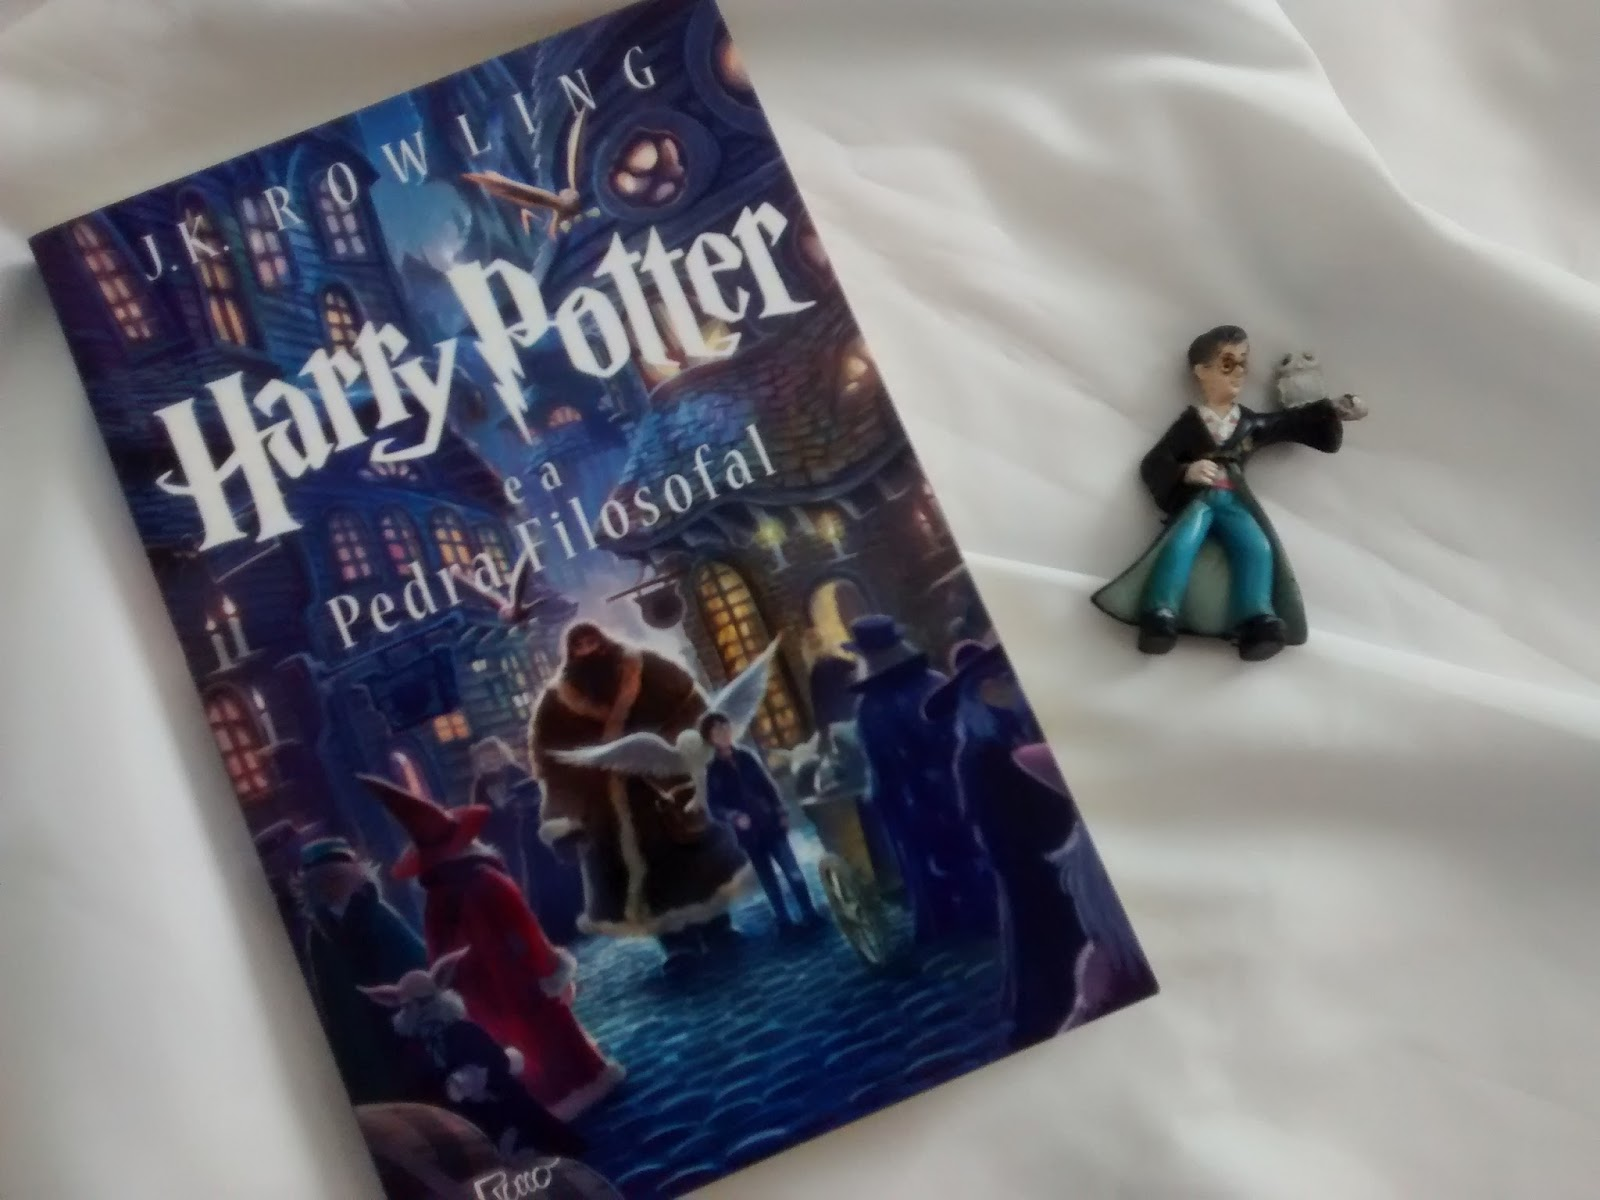 Harry Potter É A Pedra Filosofal intended for resenha: harry potter e a pedra filosofal - j.k. rowling +